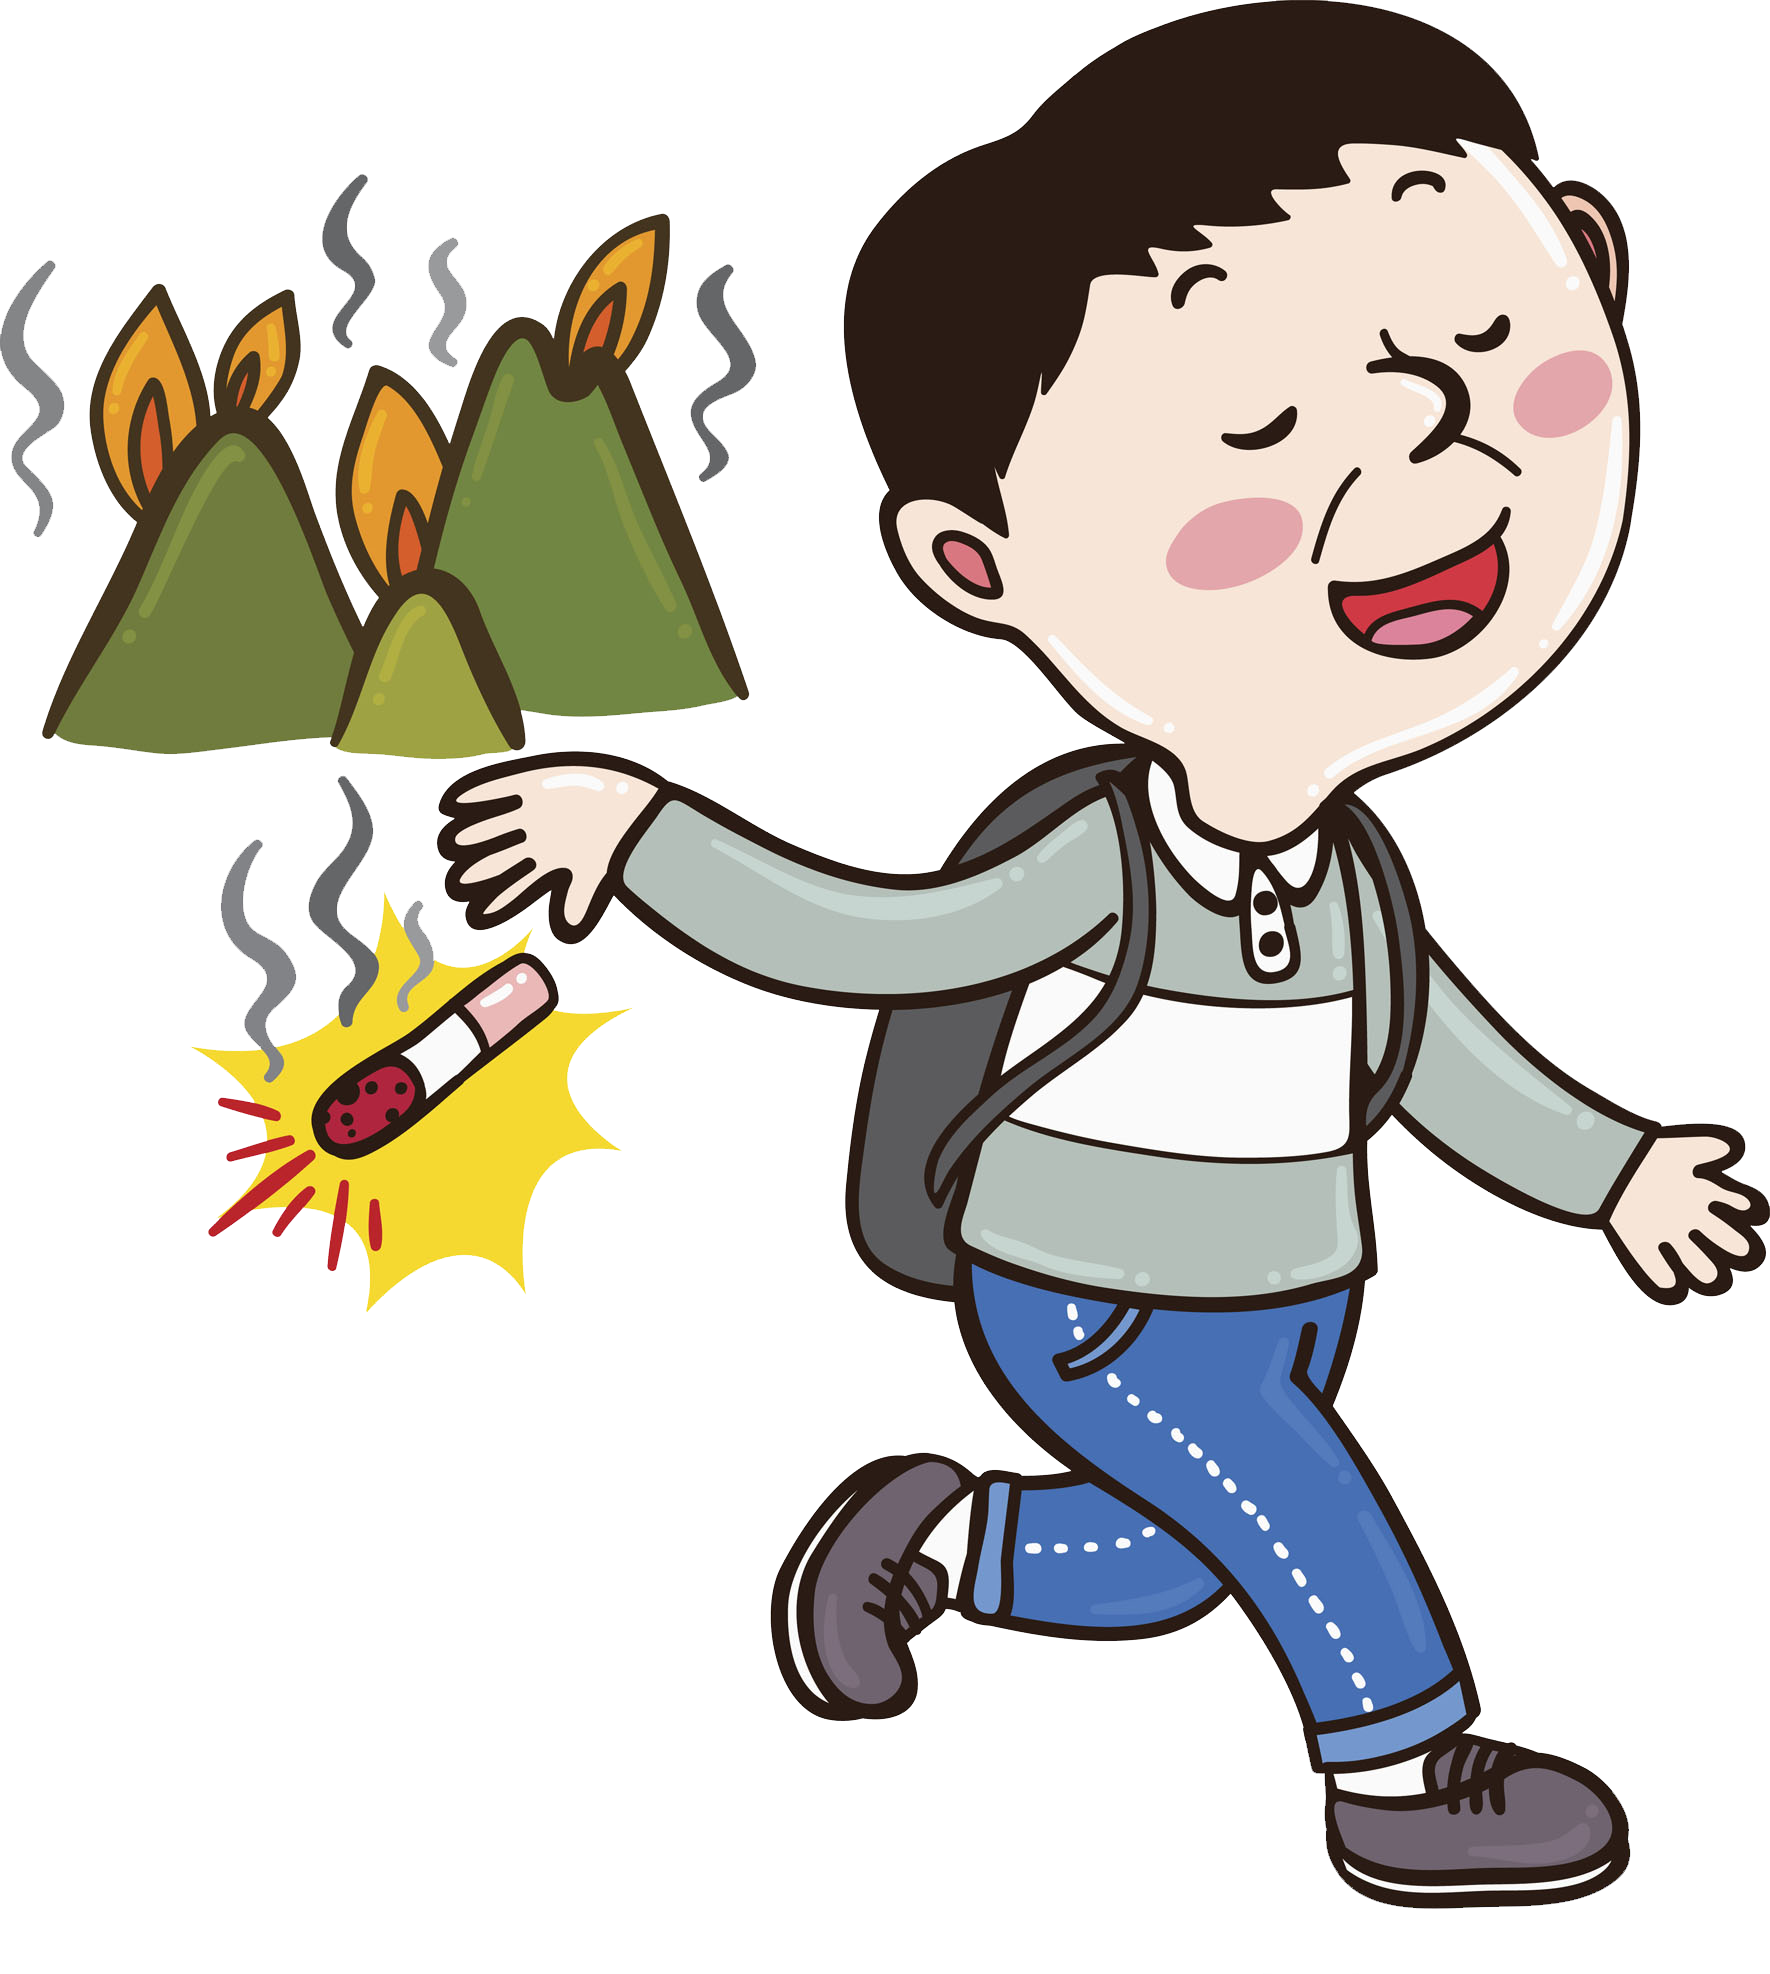 Burilla combustion the man. Clipart fire conflagration